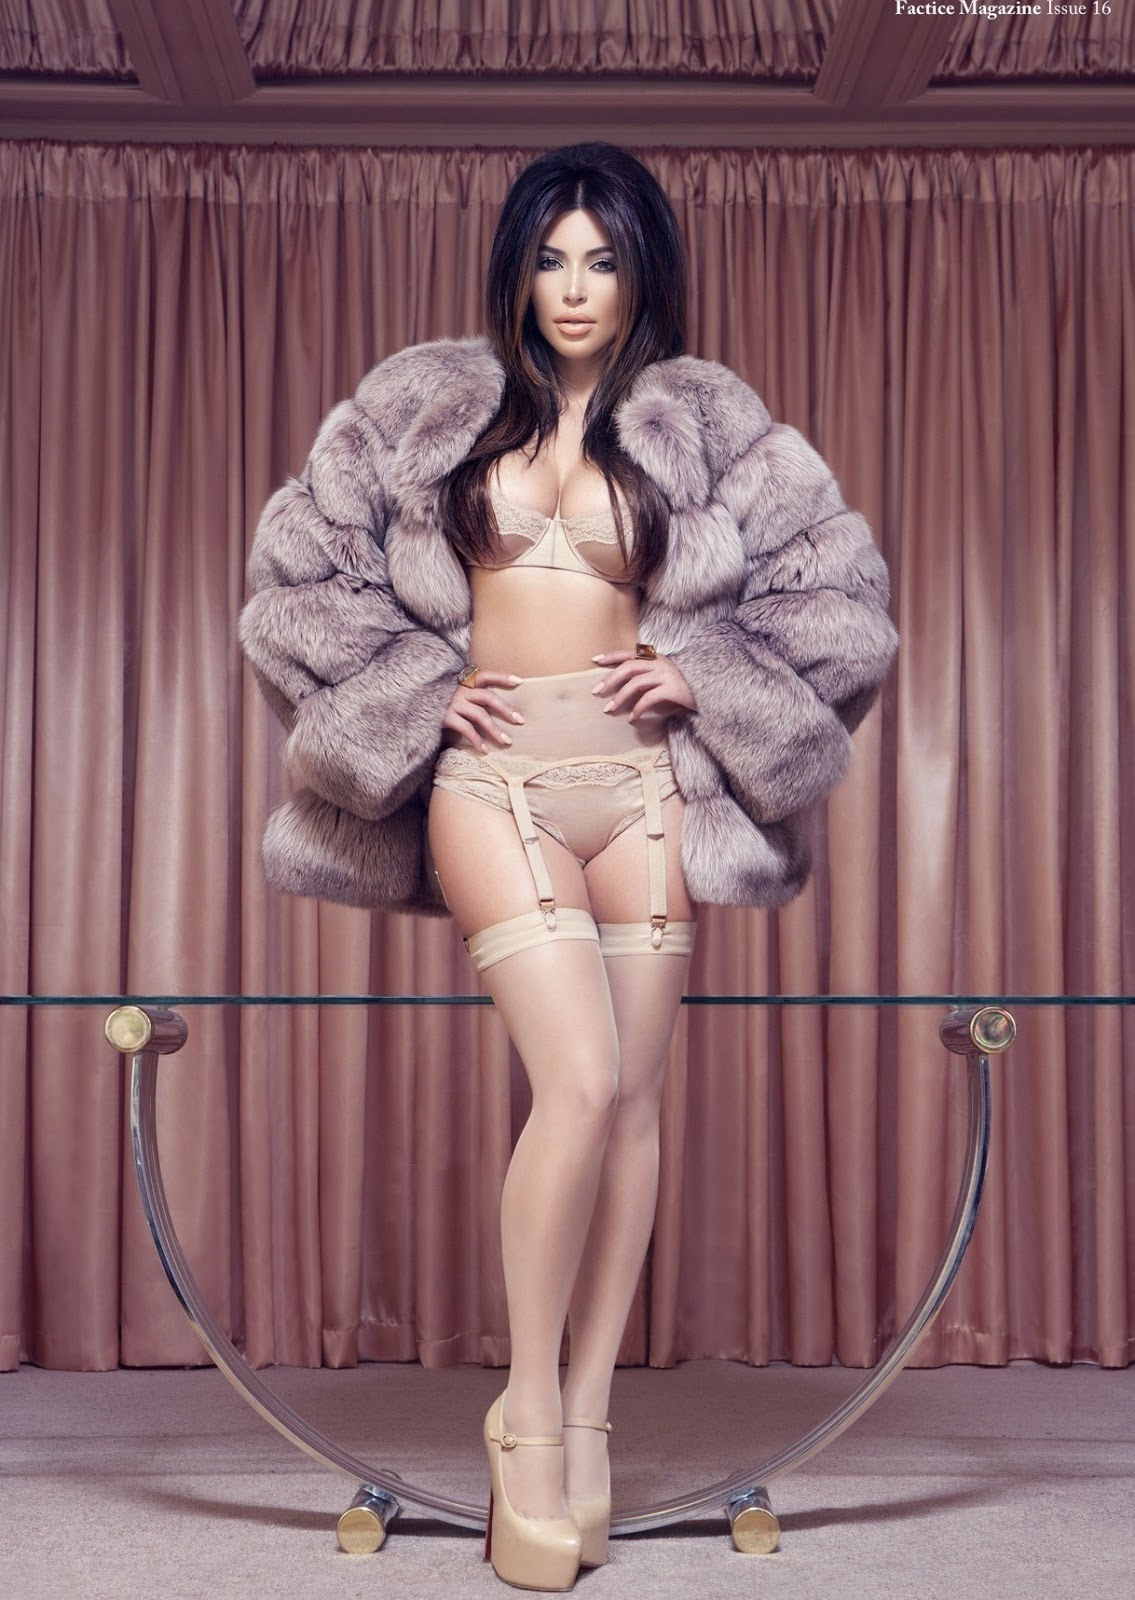 Factice France January Kim Kardashian